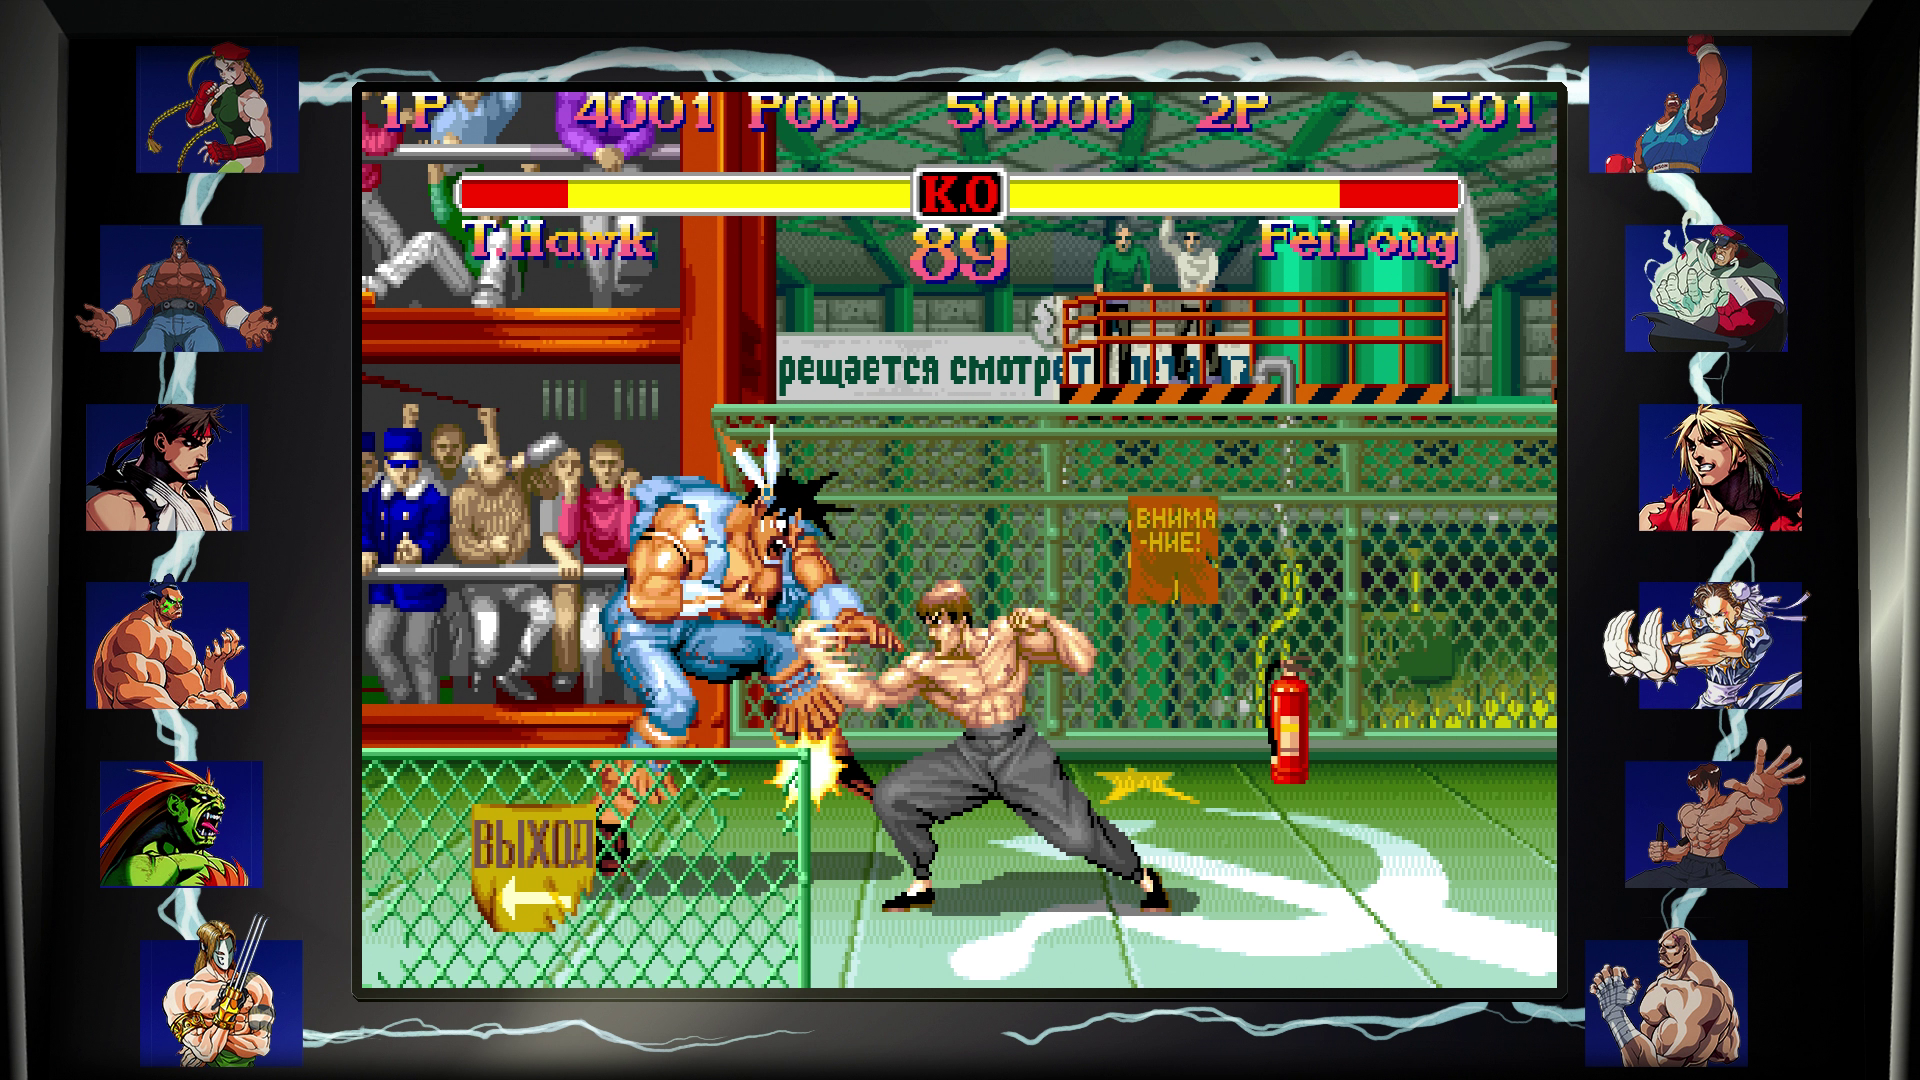 SF30-SSF2-01-Capcom